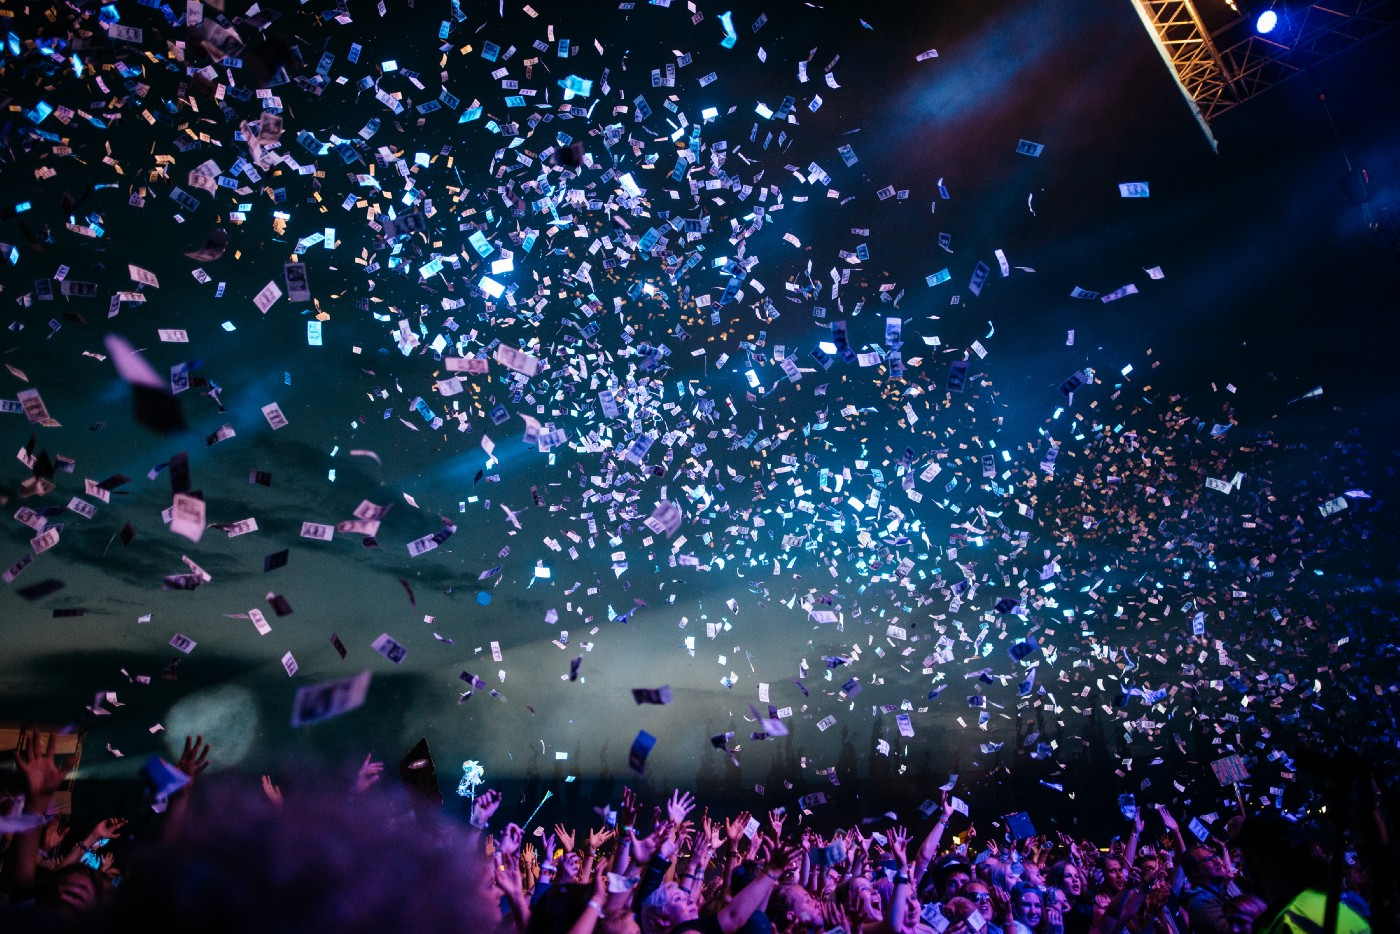 Bright blue and pink confetti tossed into a dark blue sky.